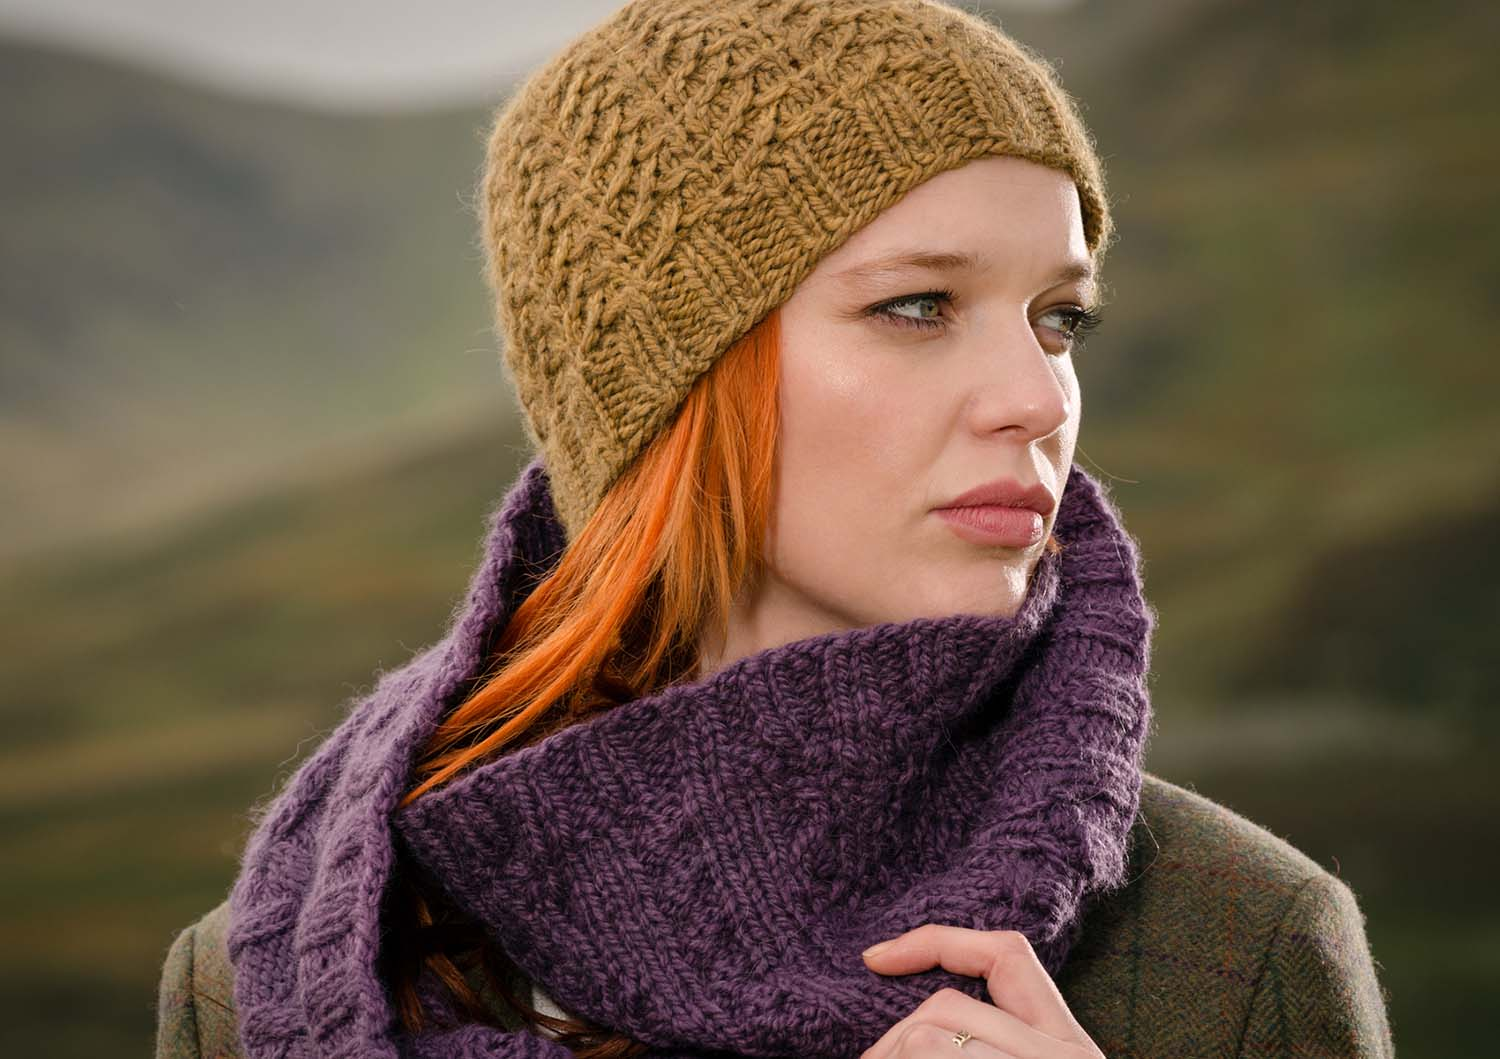 35614d25b 6 Knitted Hat Patterns for Women - The Fibre Co.